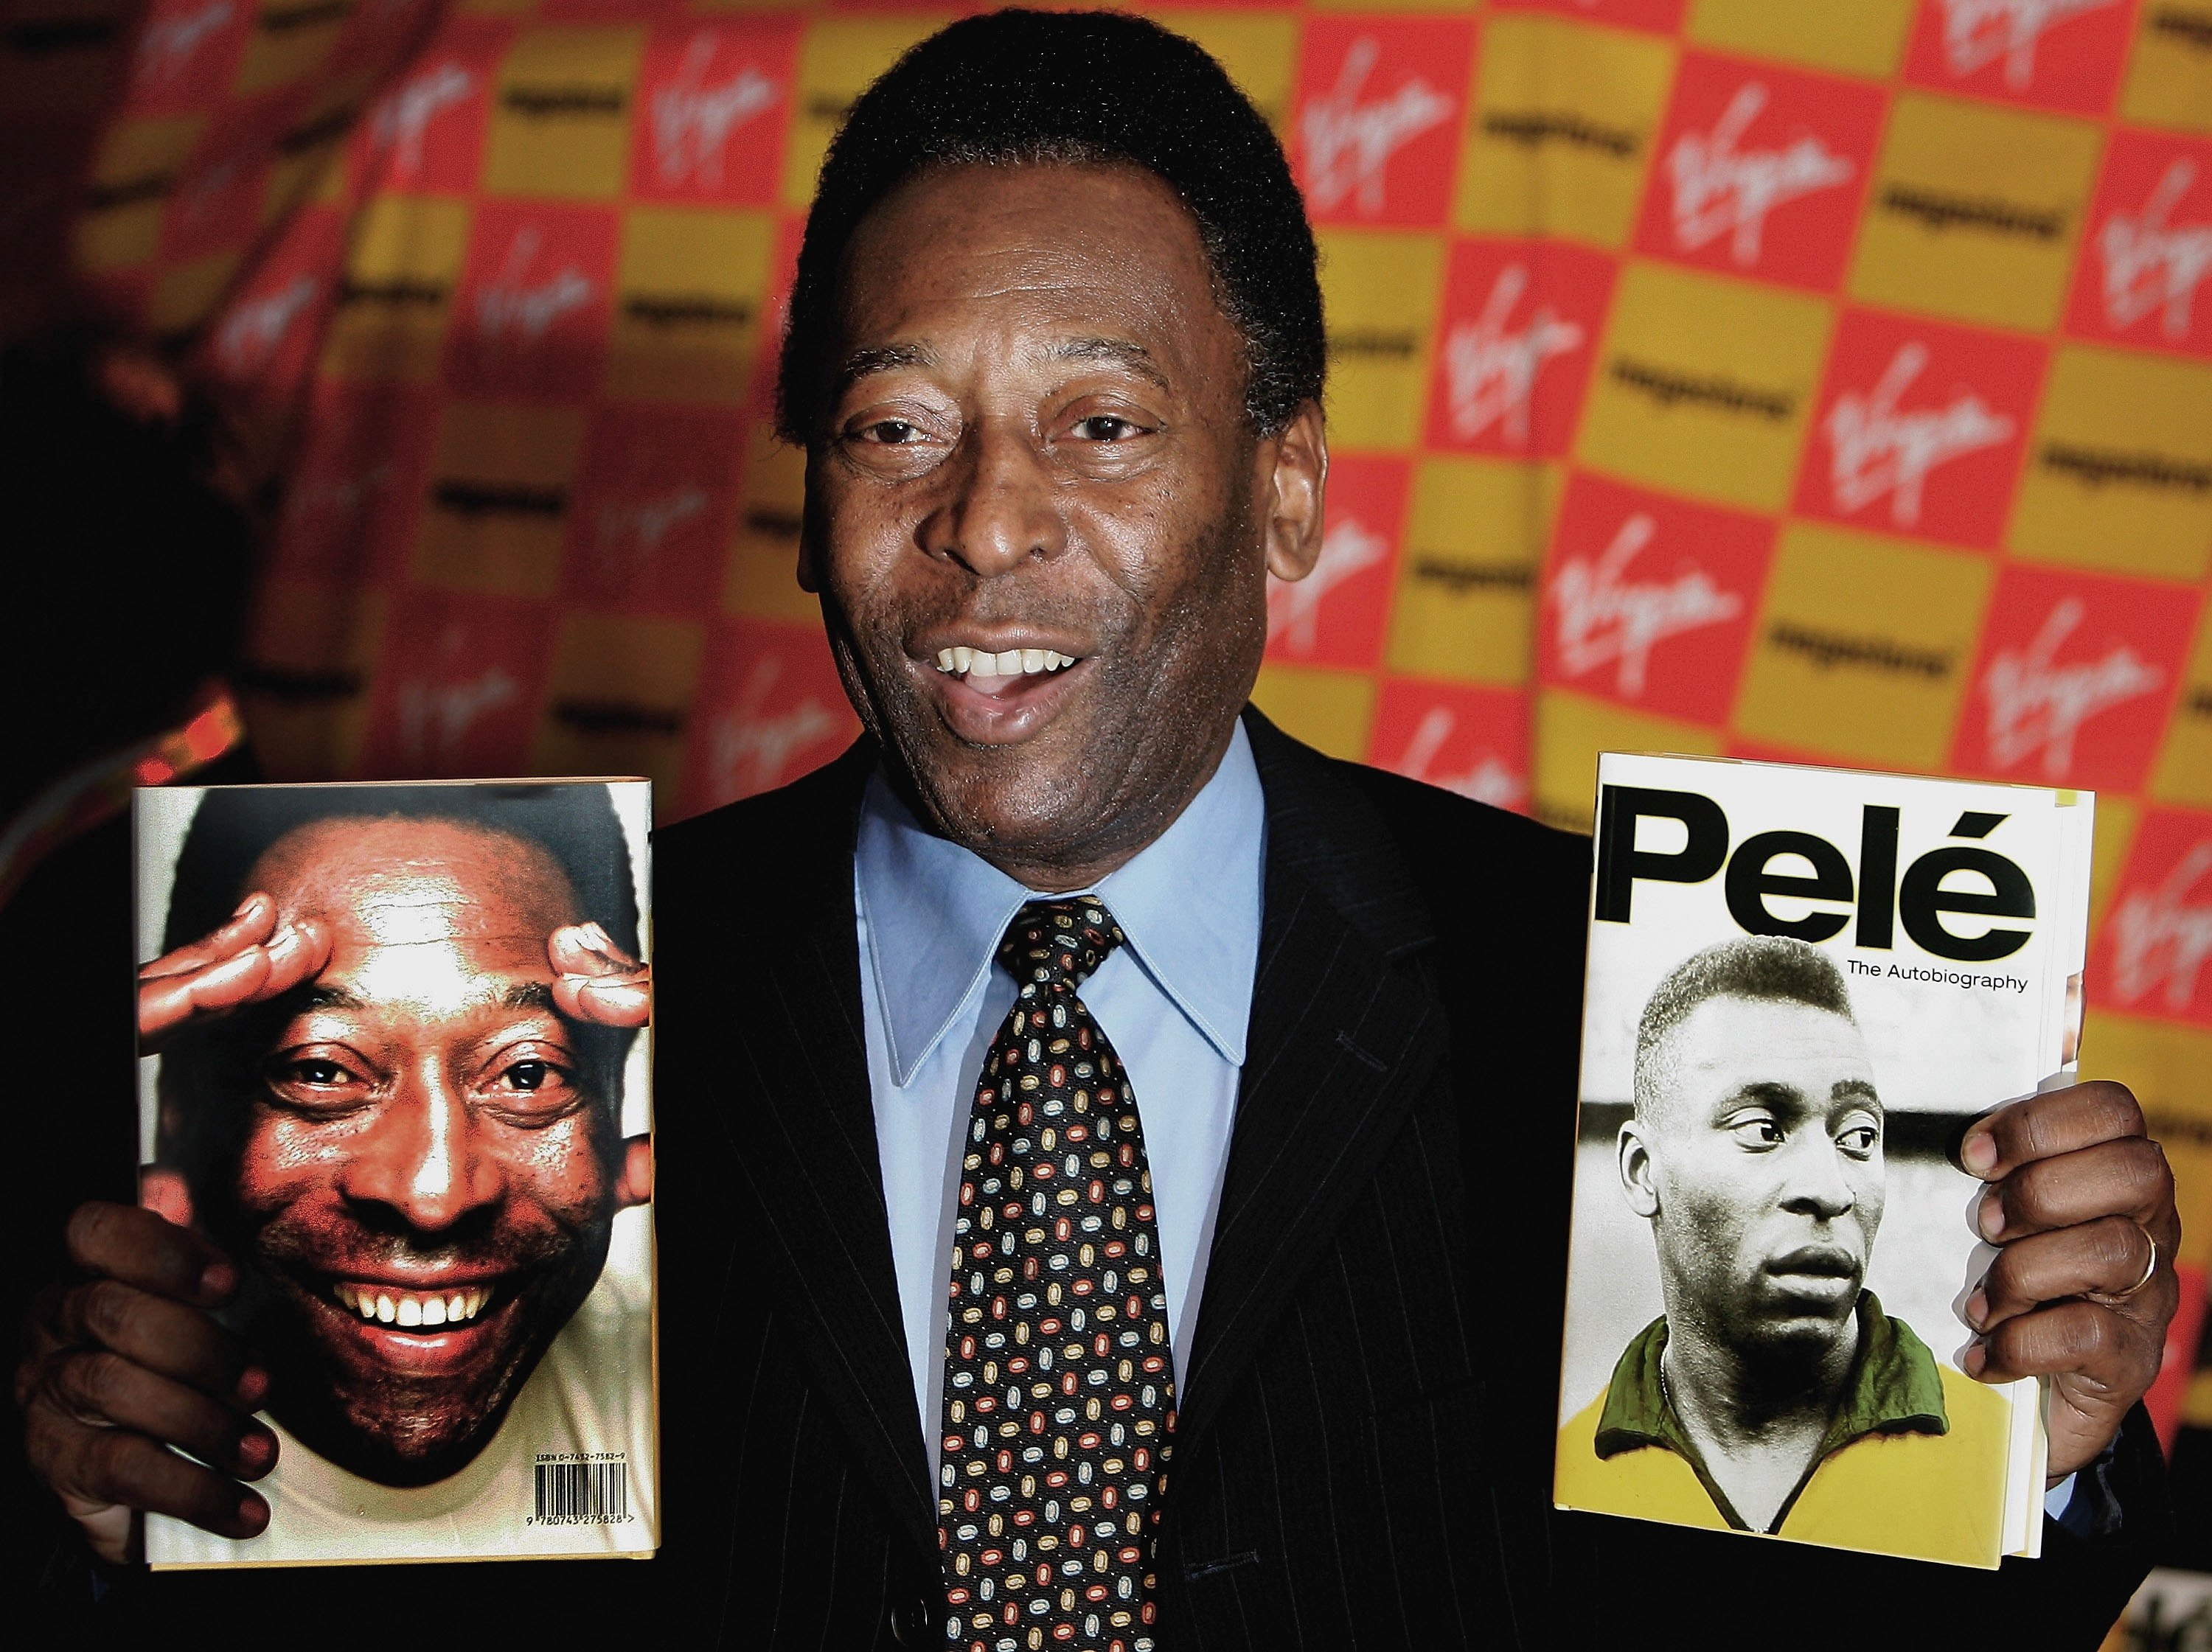 Pelé is today the world's most famous footballer